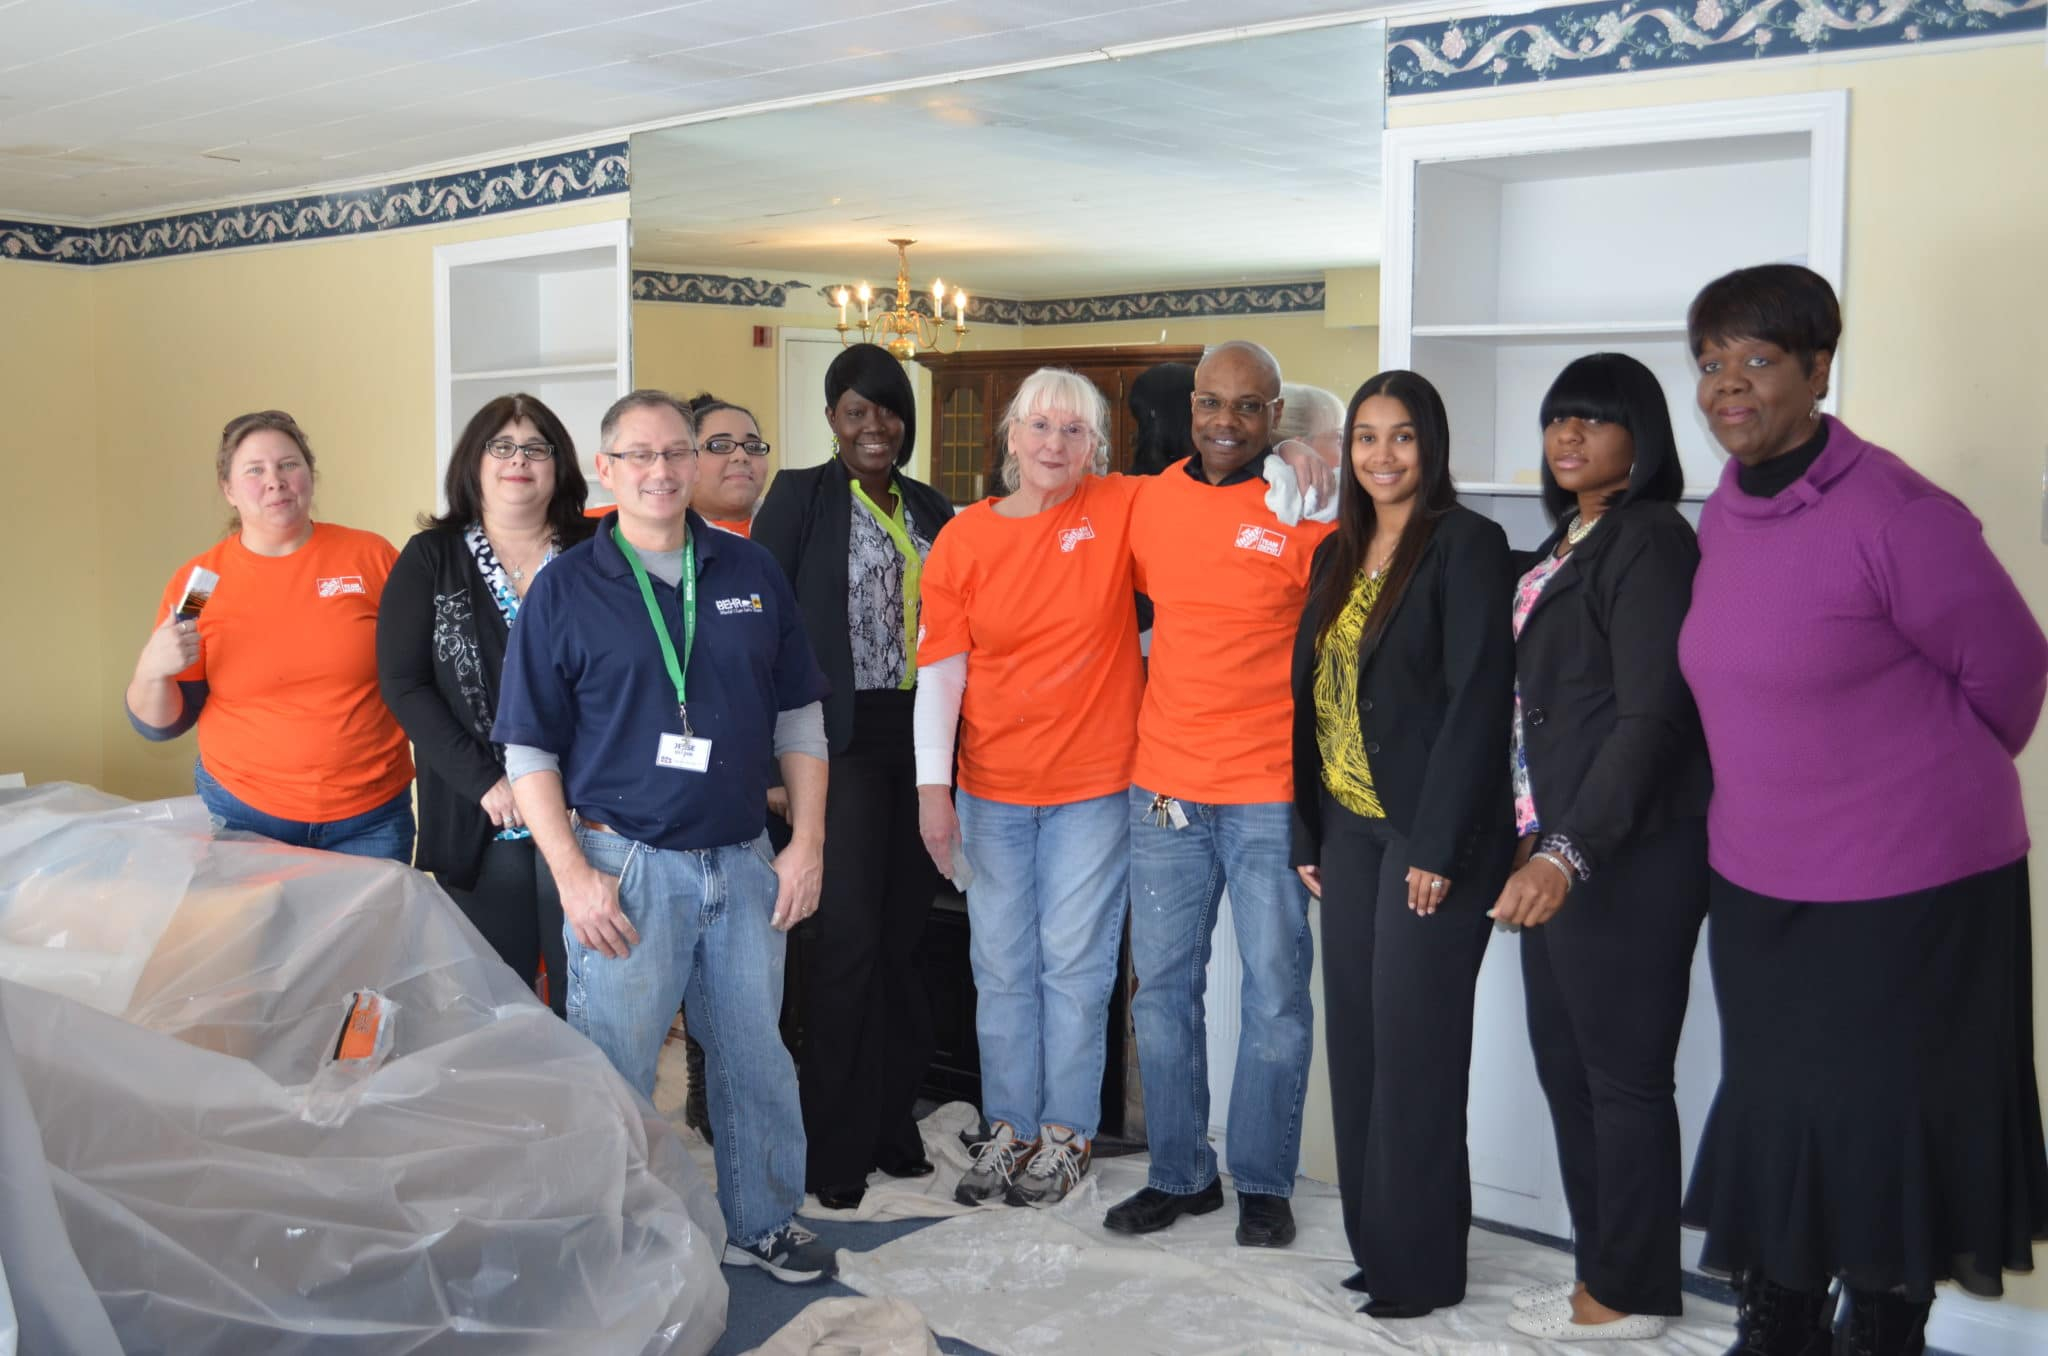 Home Depot To Repair Group Home In Ewing For People With